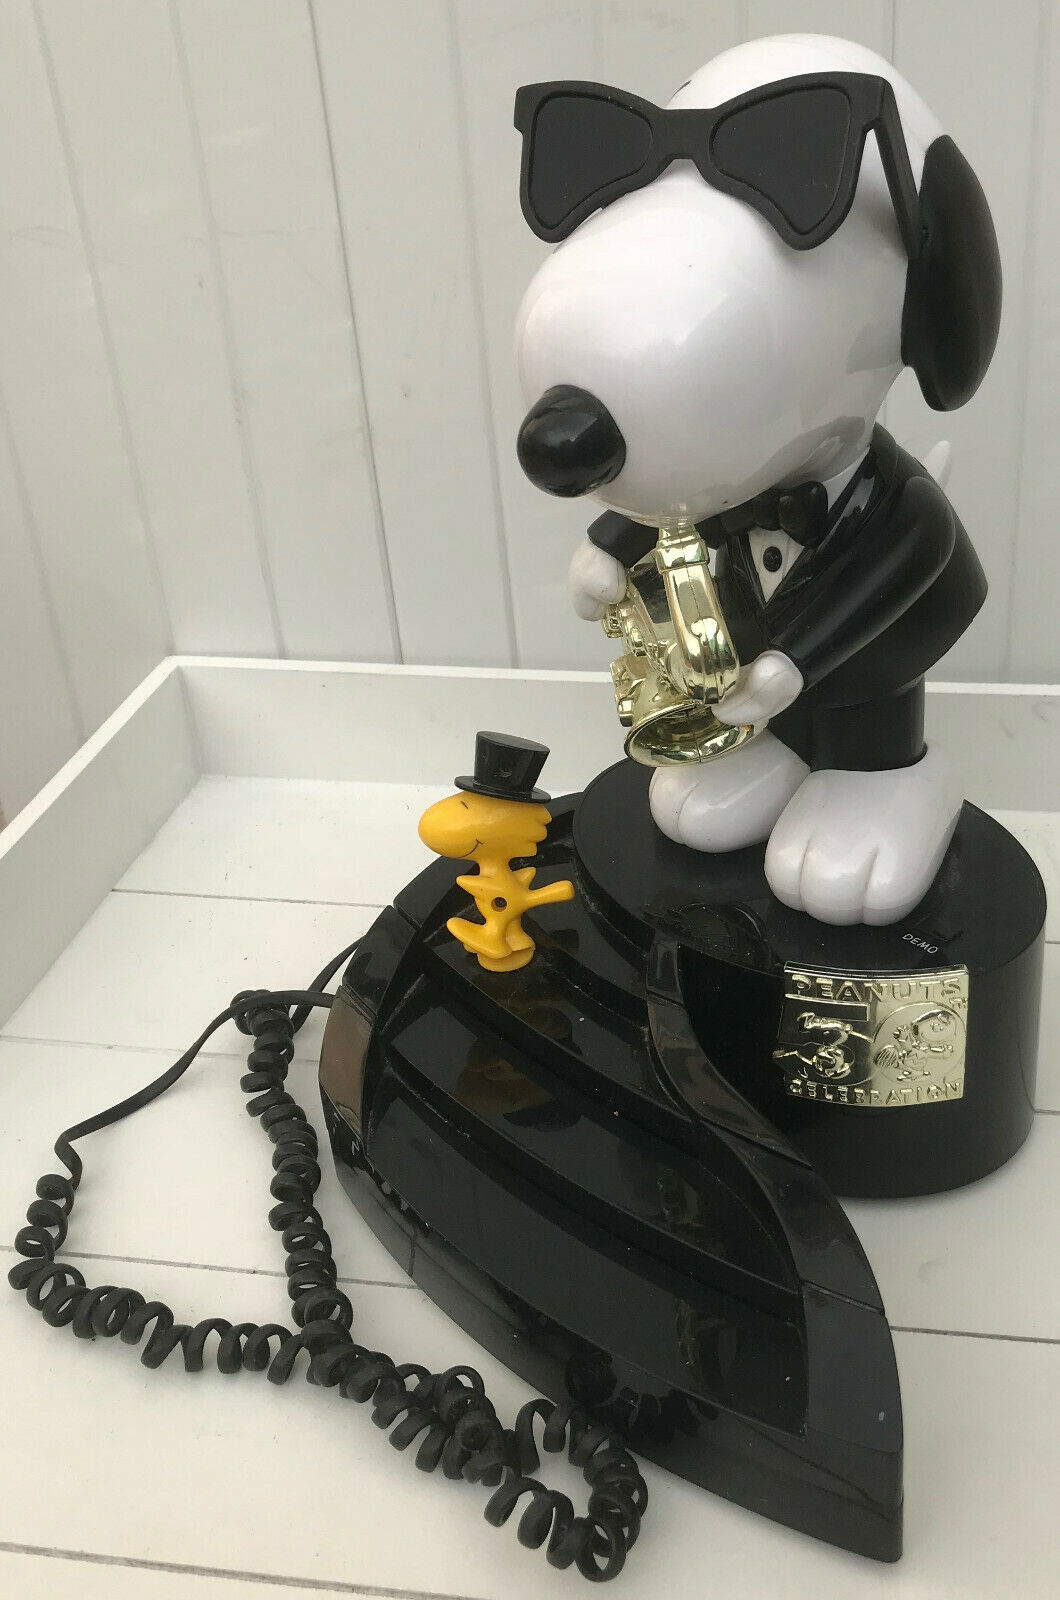 Peanuts Snoopy Saxophone & Woodstock 50th Anniversary Animated Phone collector